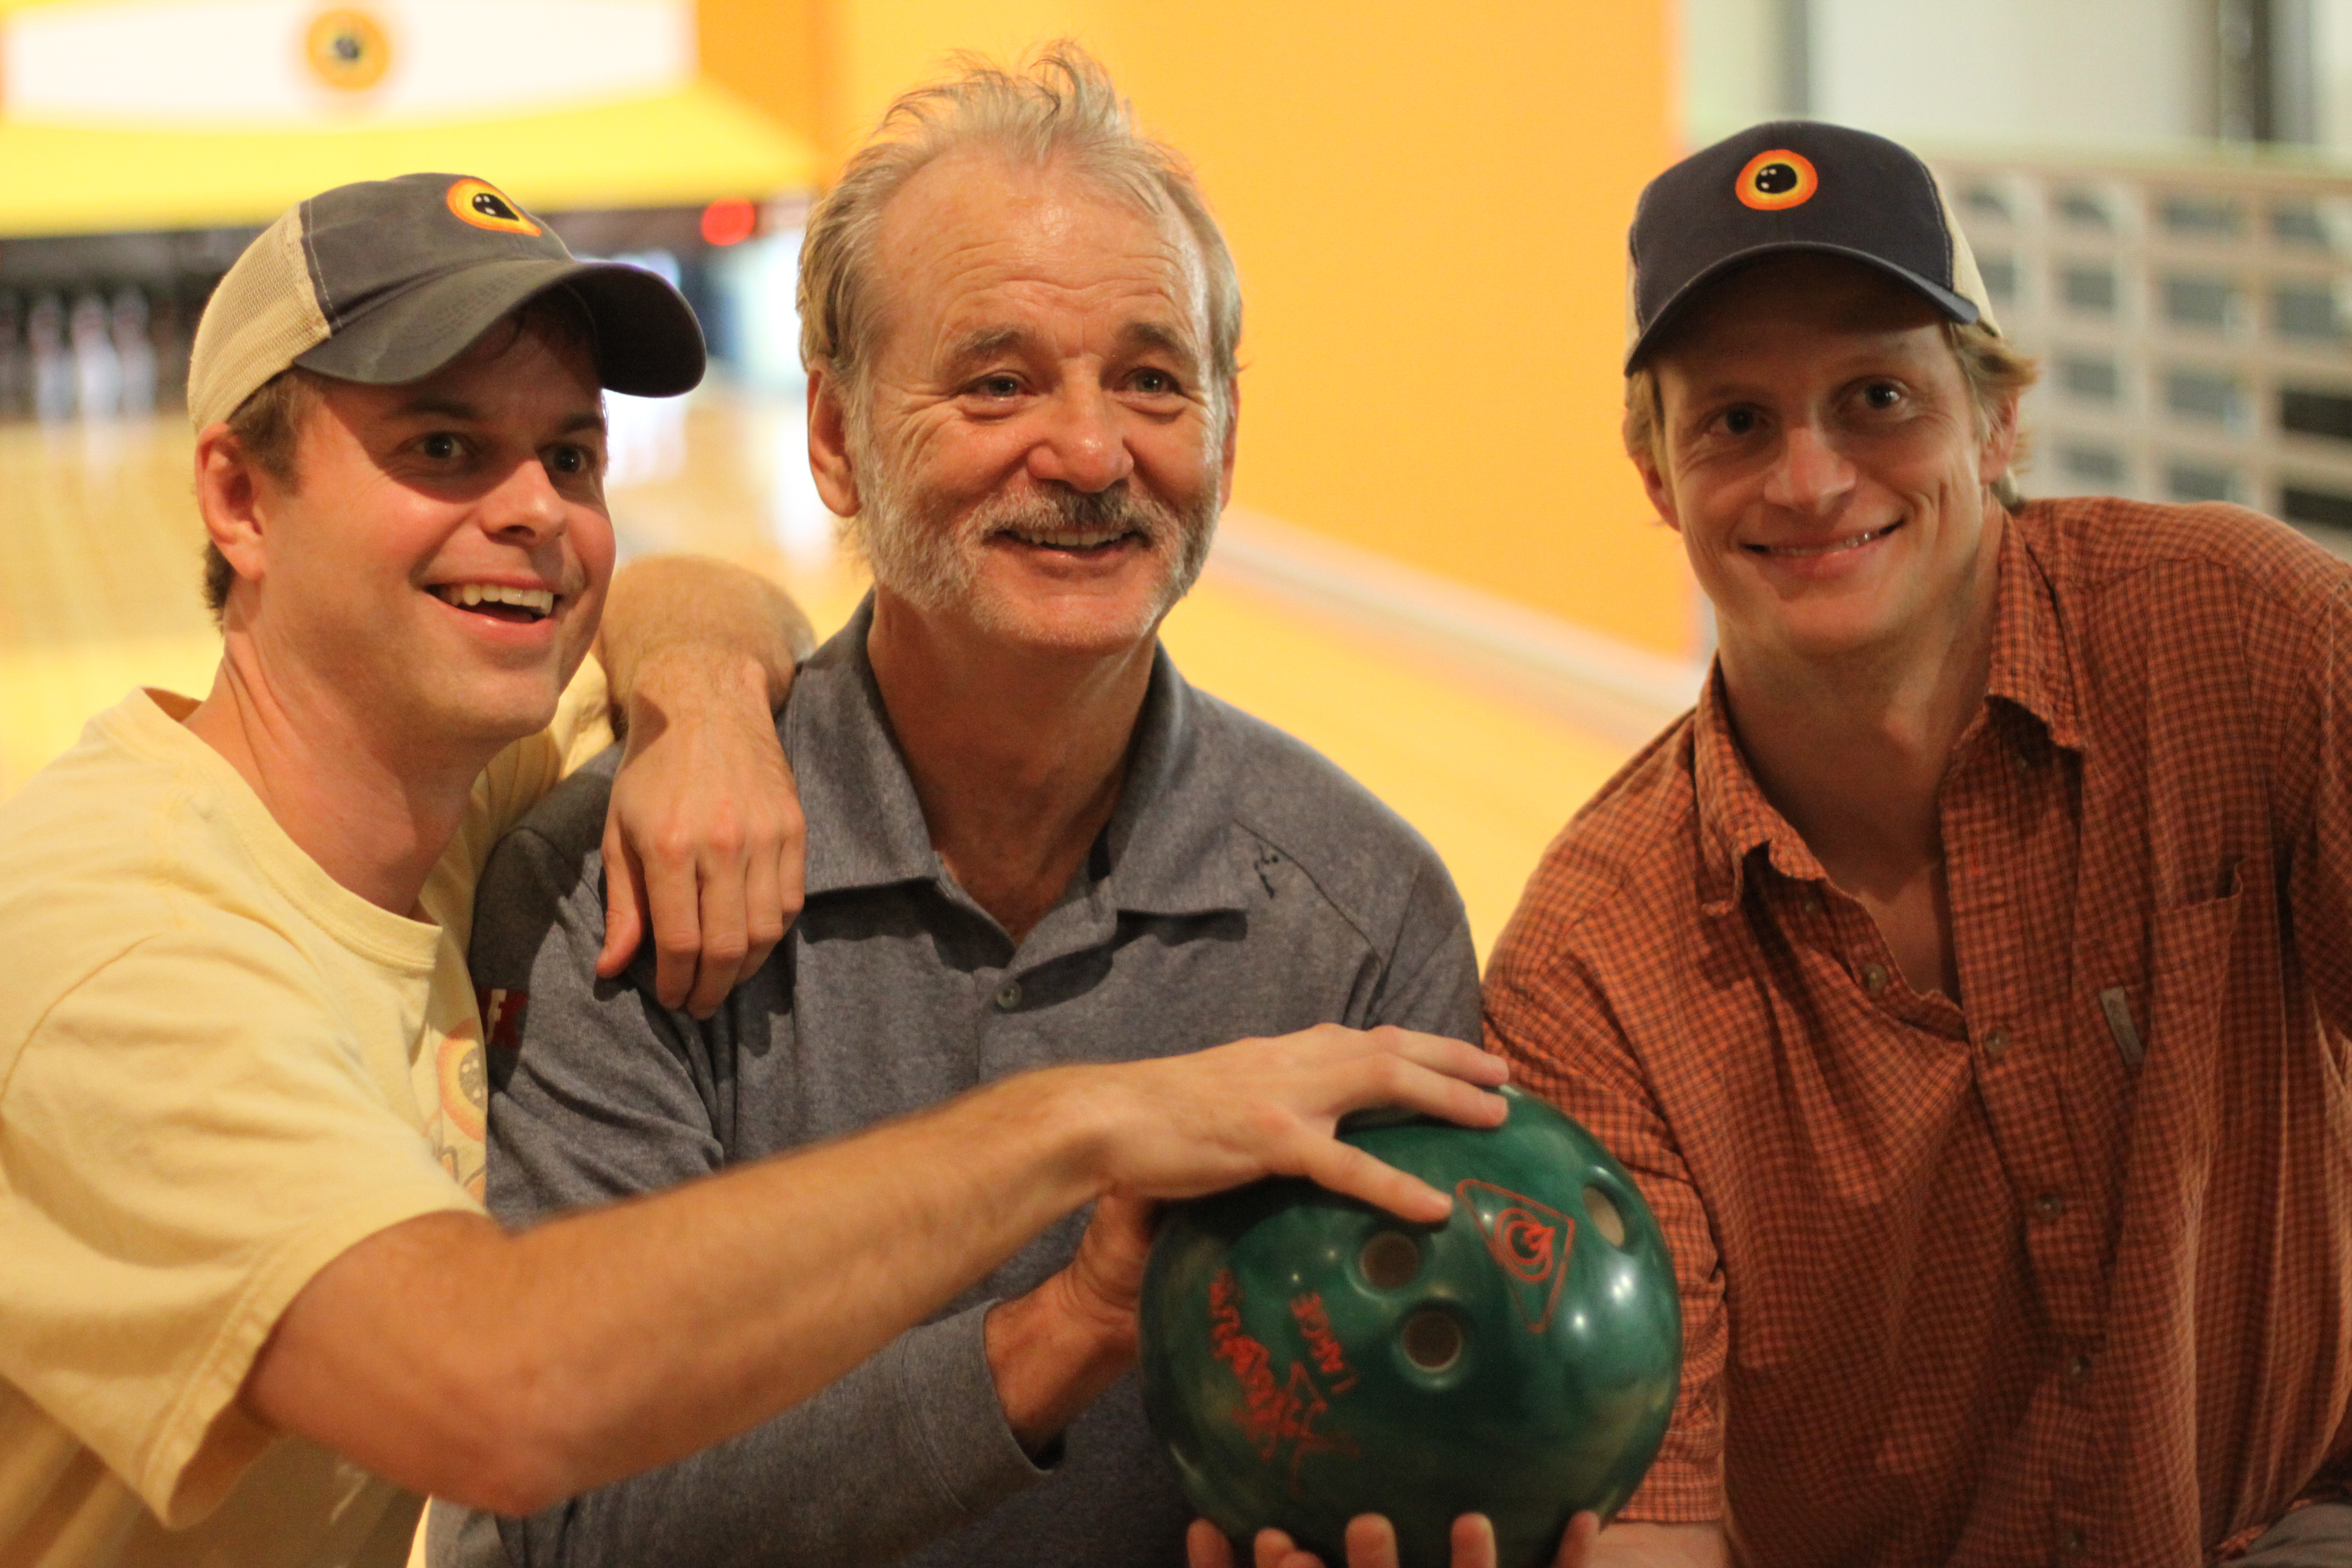 Co-owners of The Alley with Bill Murray